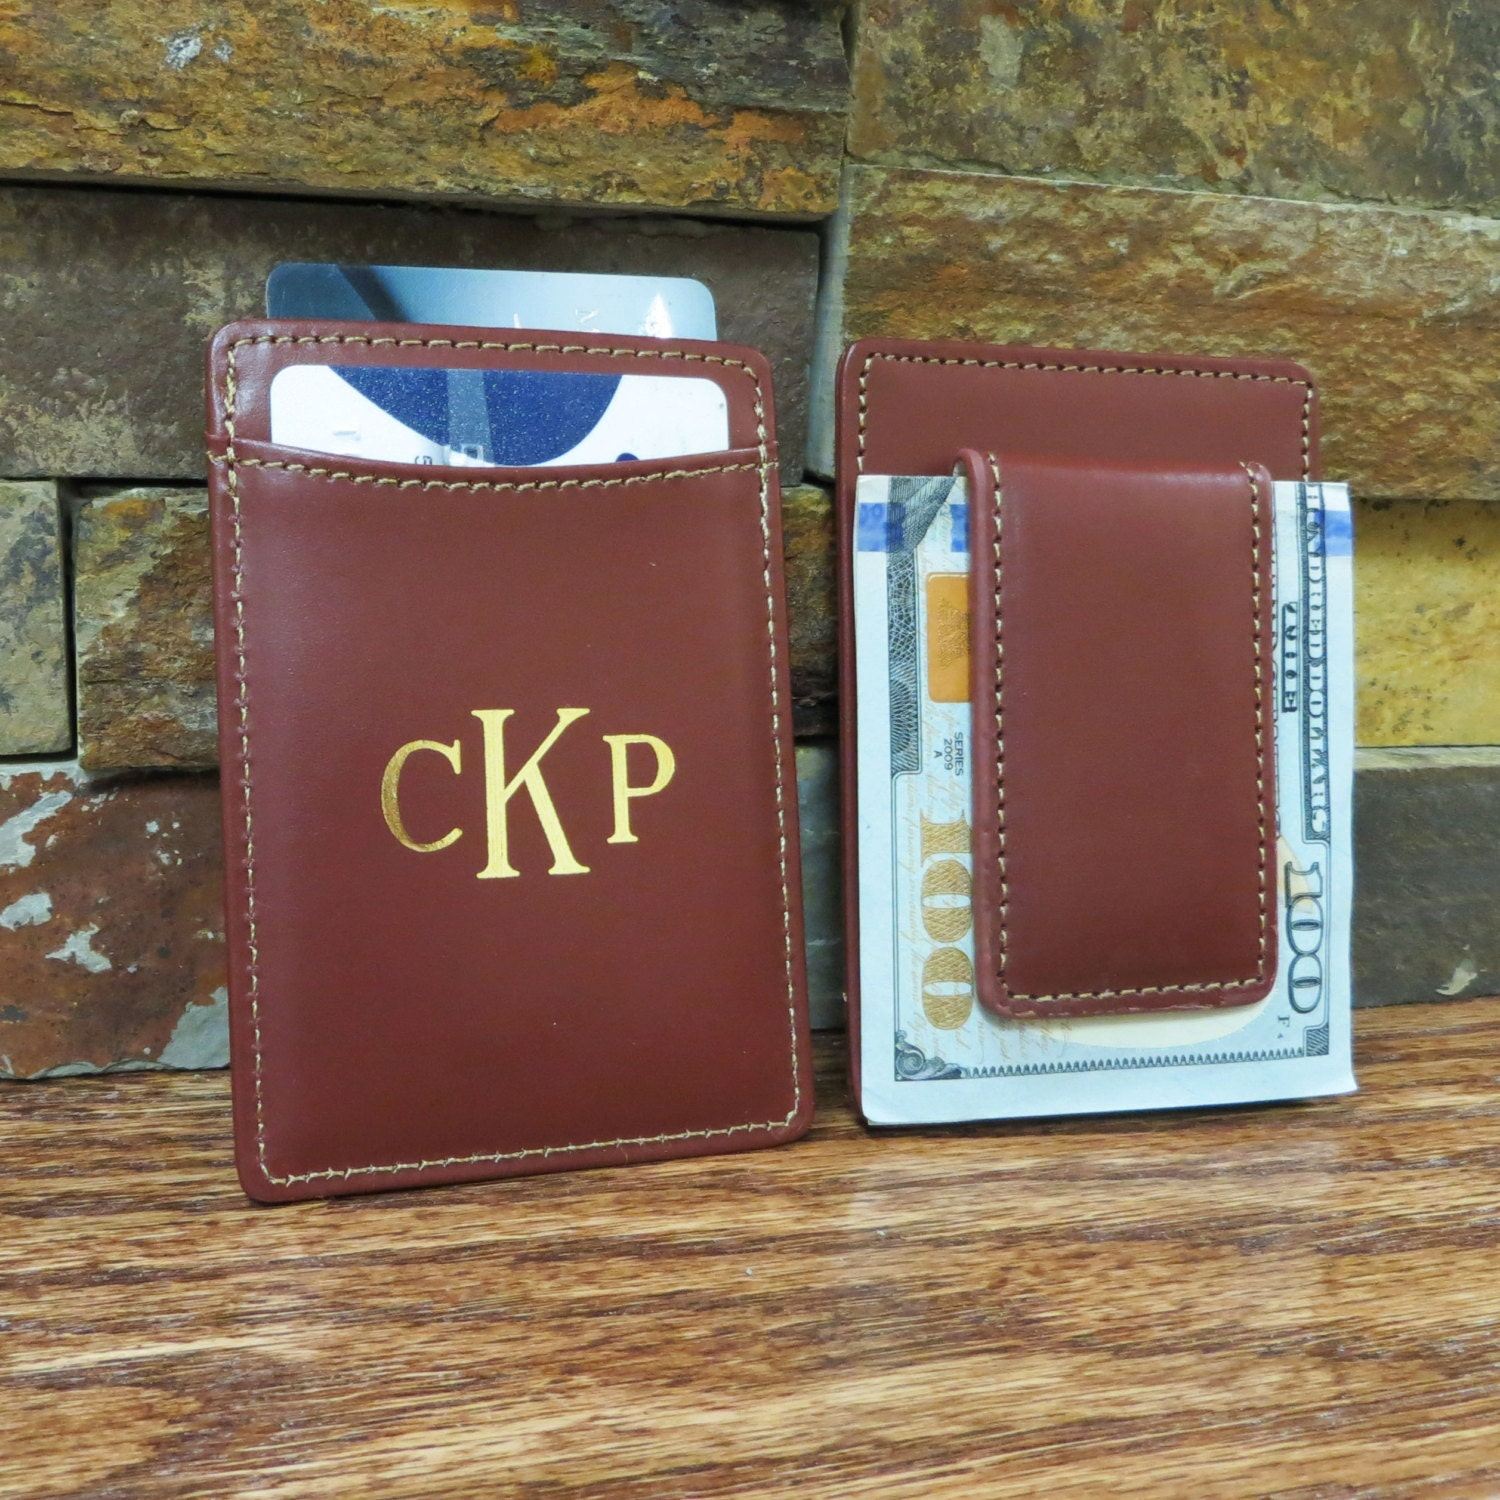 Monogrammed Leather Wallet w/ Money Clip Monogram Wallet